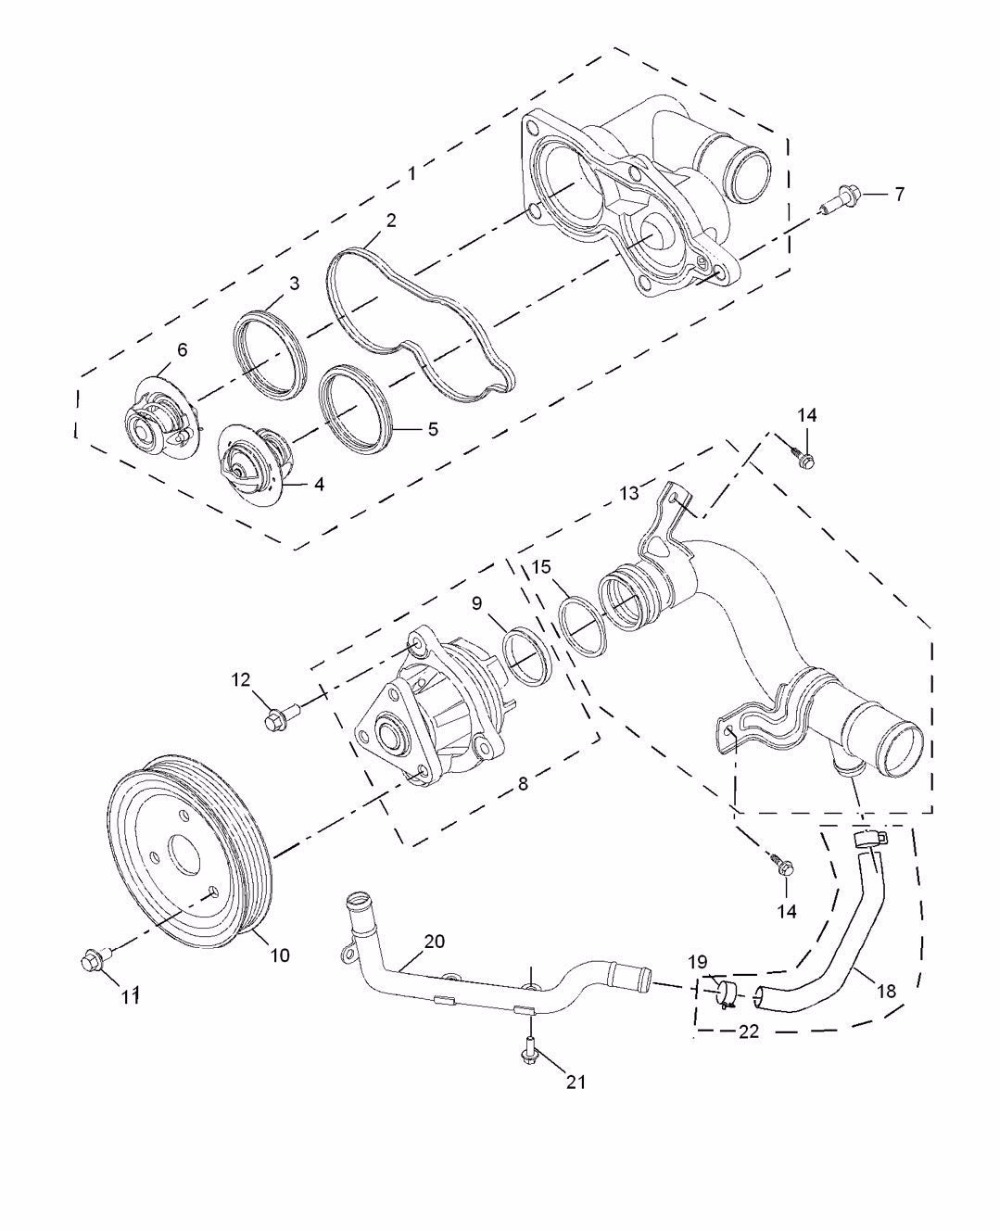 Water Pump Assy For Chinese Saic Roewe350 Mg3 Mg5 1 5l Engine Auto Car Motor Parts 10172615 Hot Offer Df65 Cicig